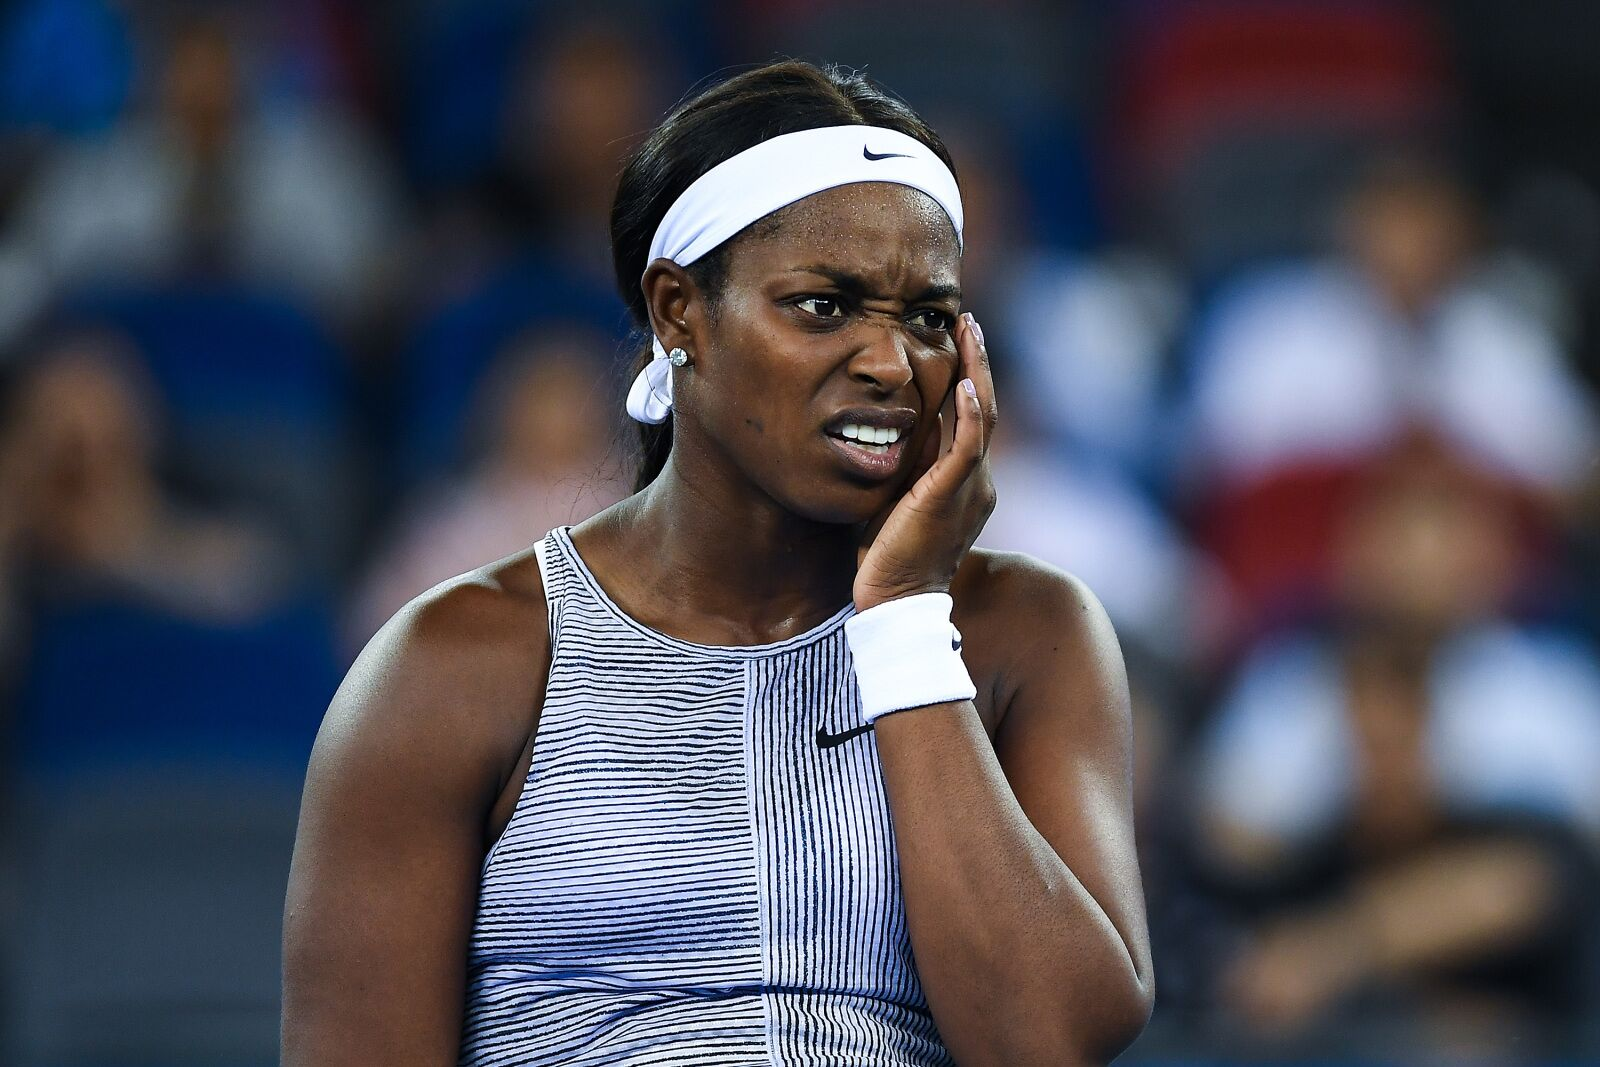 Sloane Stephens and 5 WTA Tour players who had a year to forget